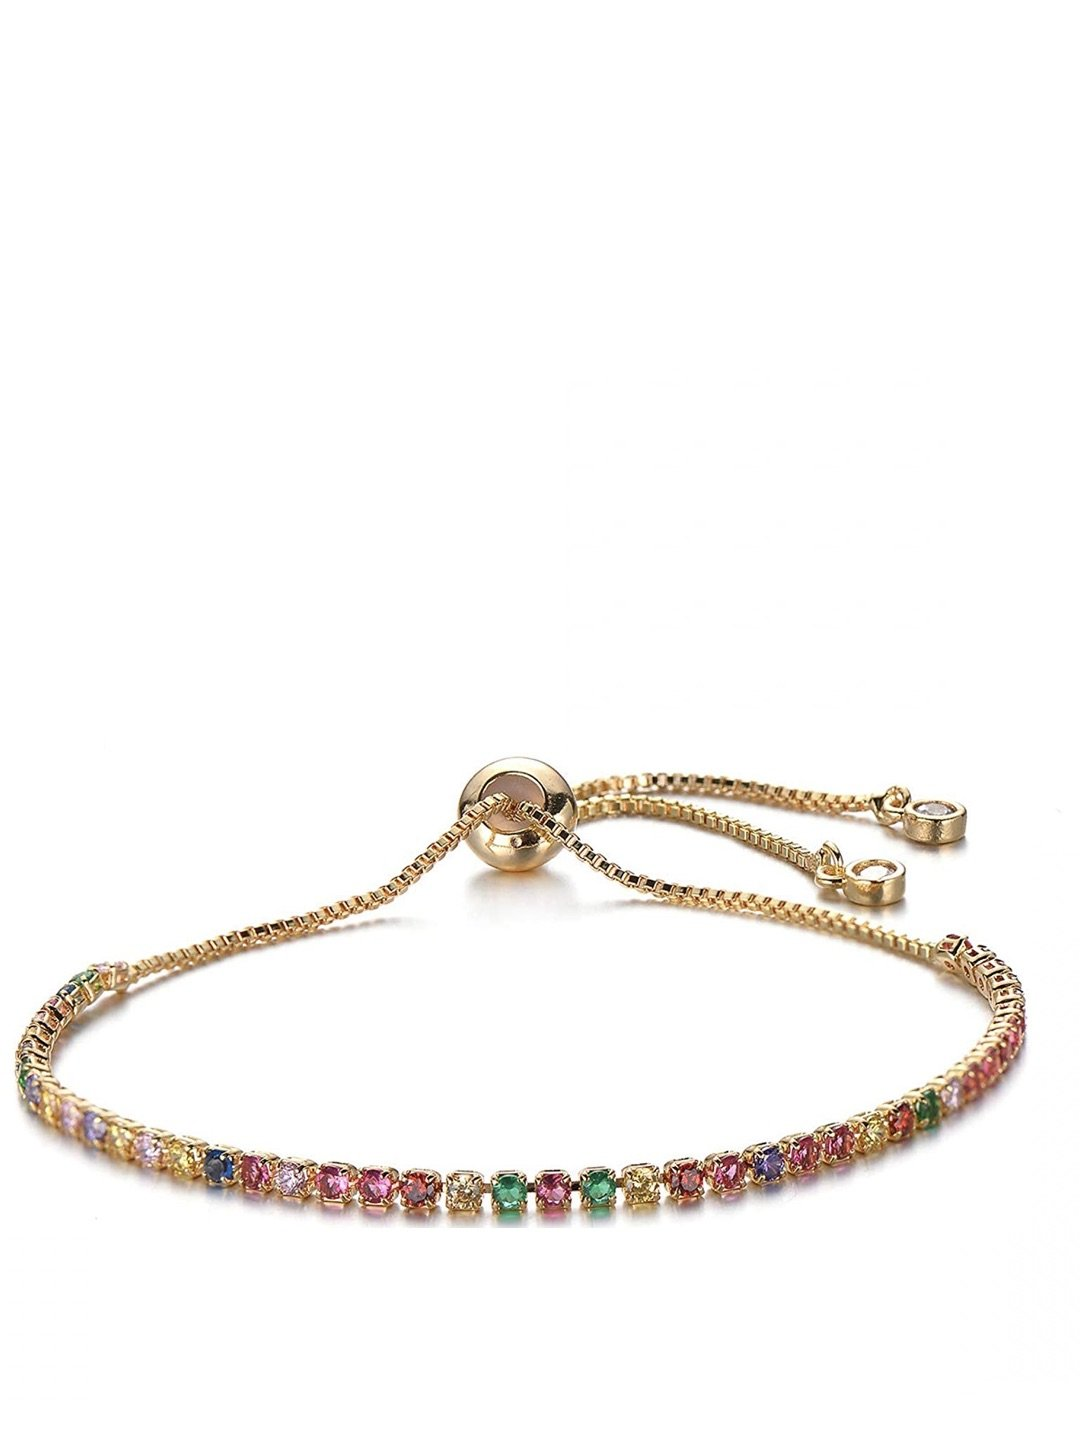 18K Gold Cz Eternity Adjustable Bracelet